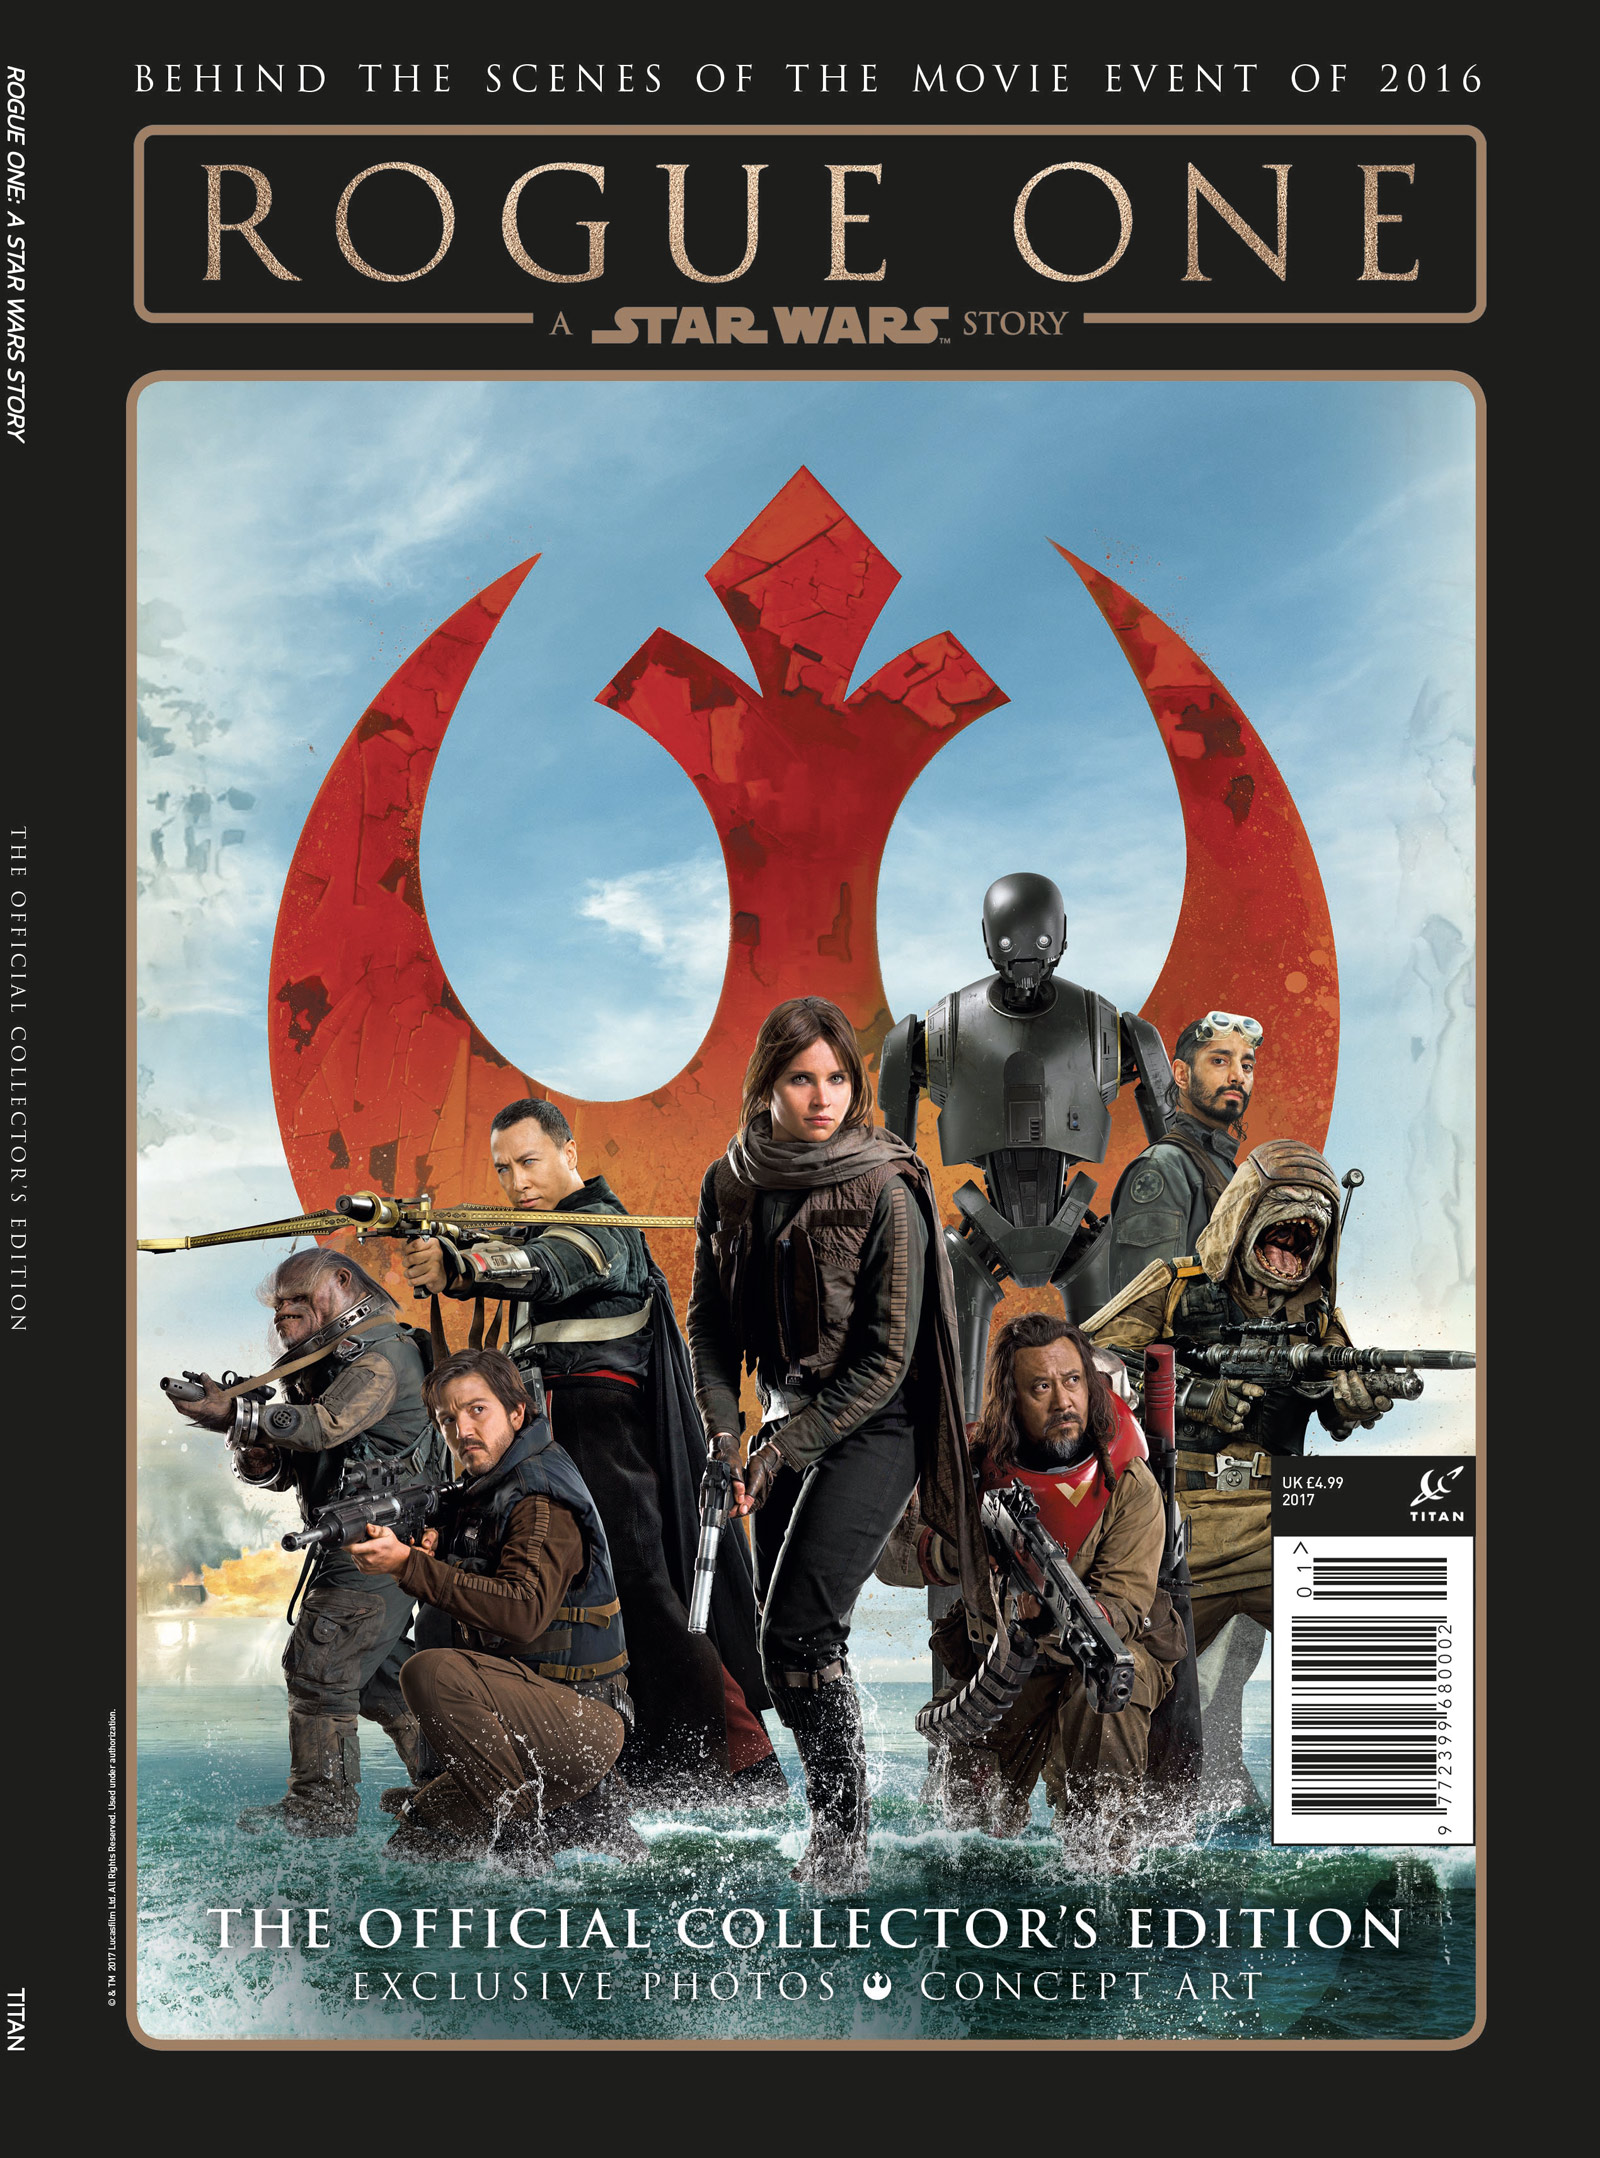 Rogue One: A Star Wars Story - Official Collectors Edition (20.12.2016)